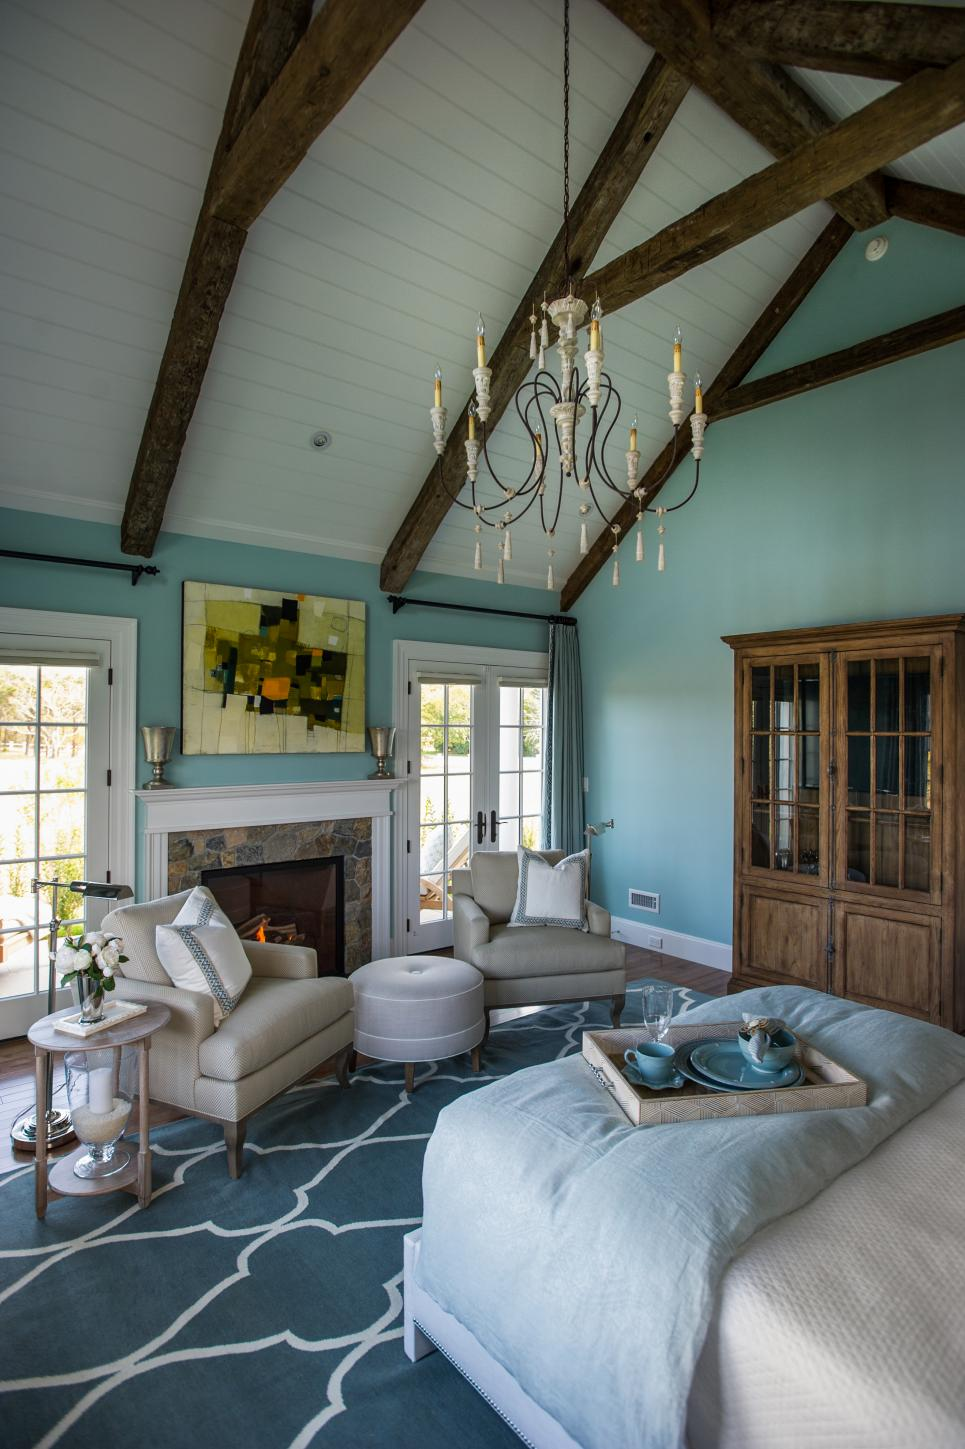 HGTV Dream Home 2015 - Vaulted Ceiling